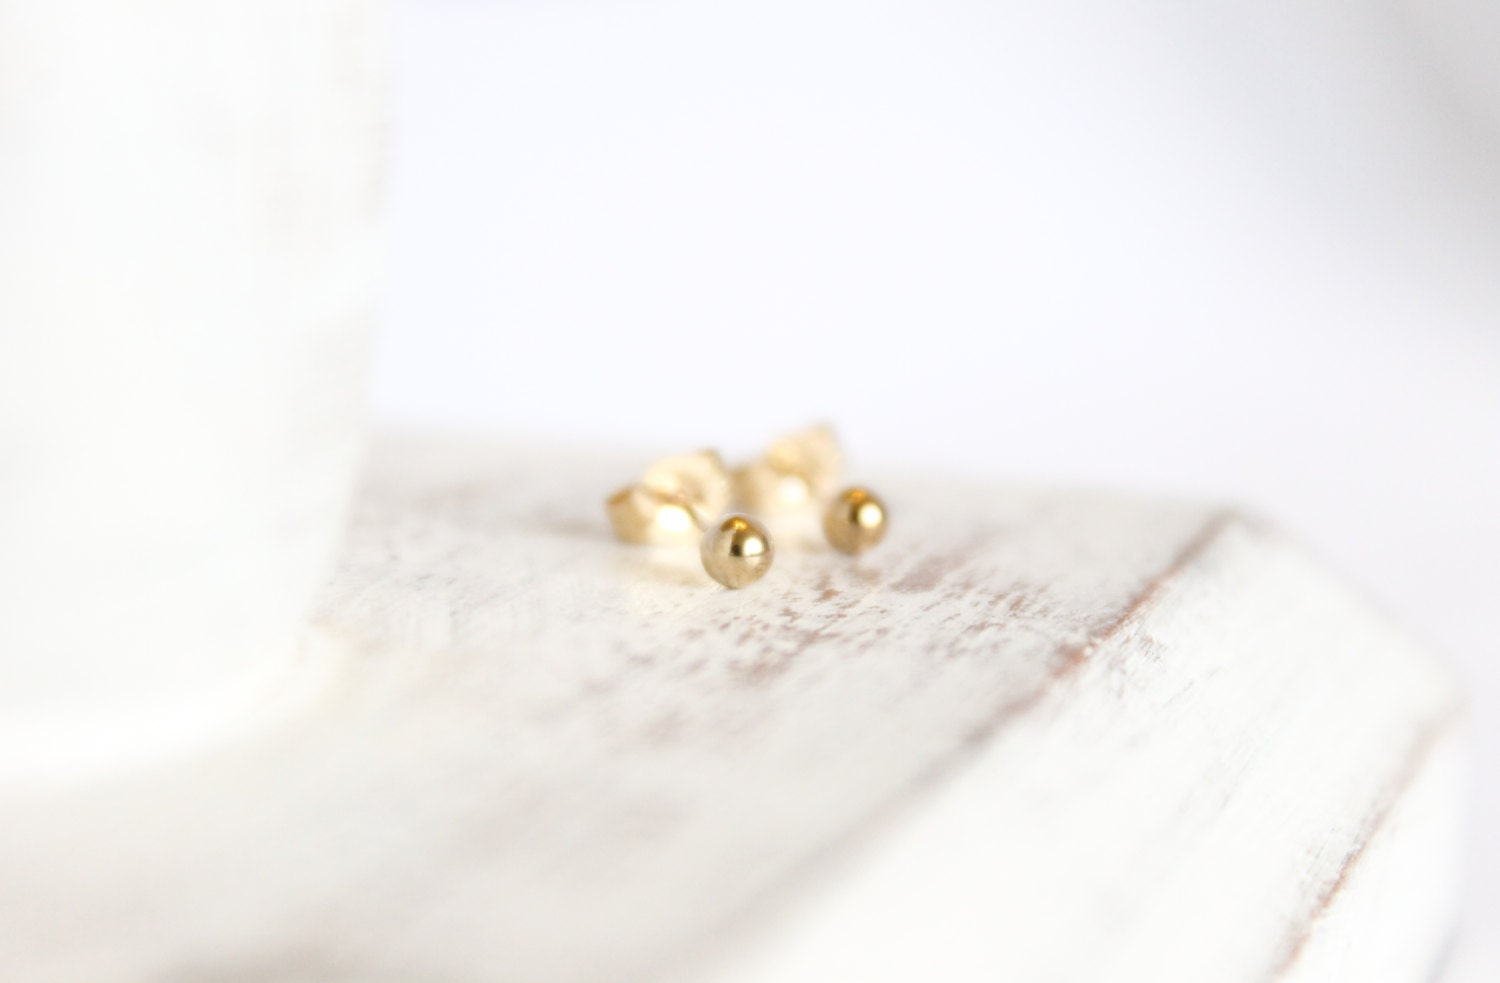 charmearrings earrings gold com round pierced product img small